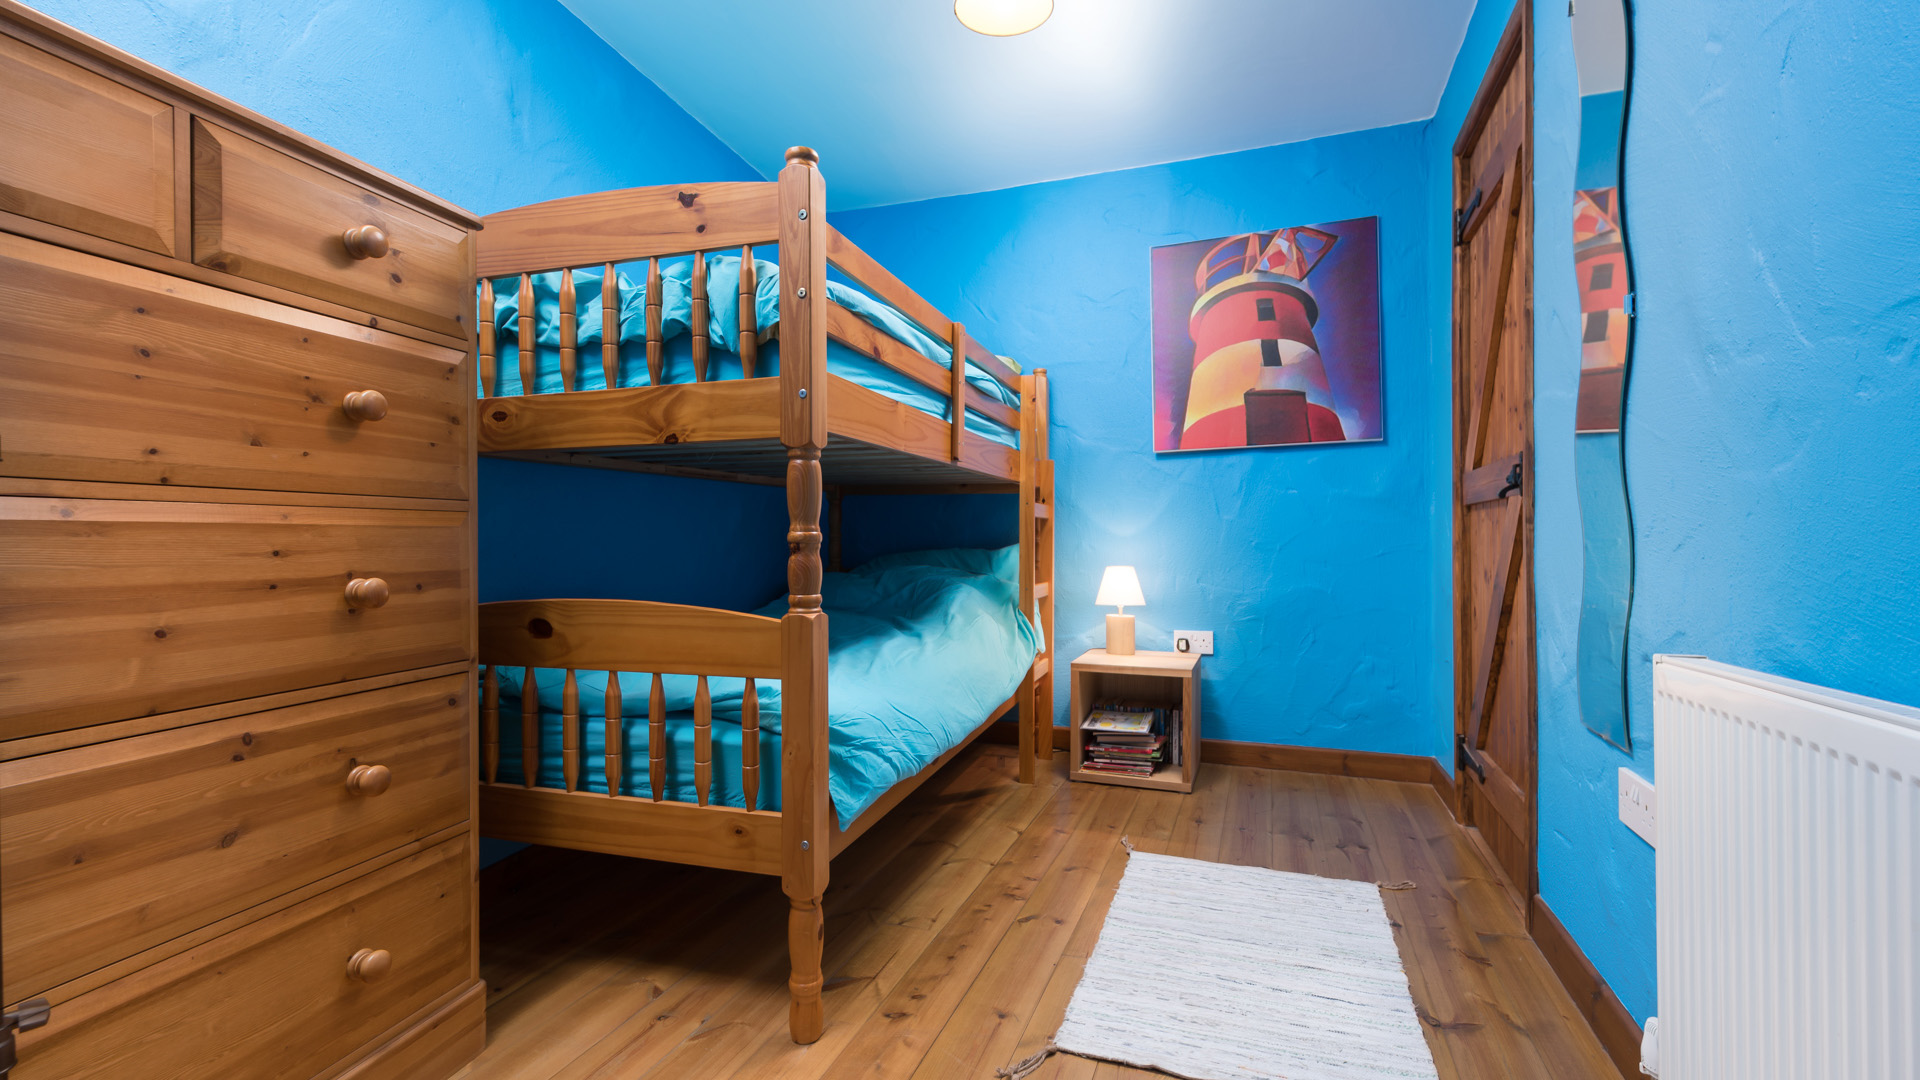 The Byre bunk bedroom